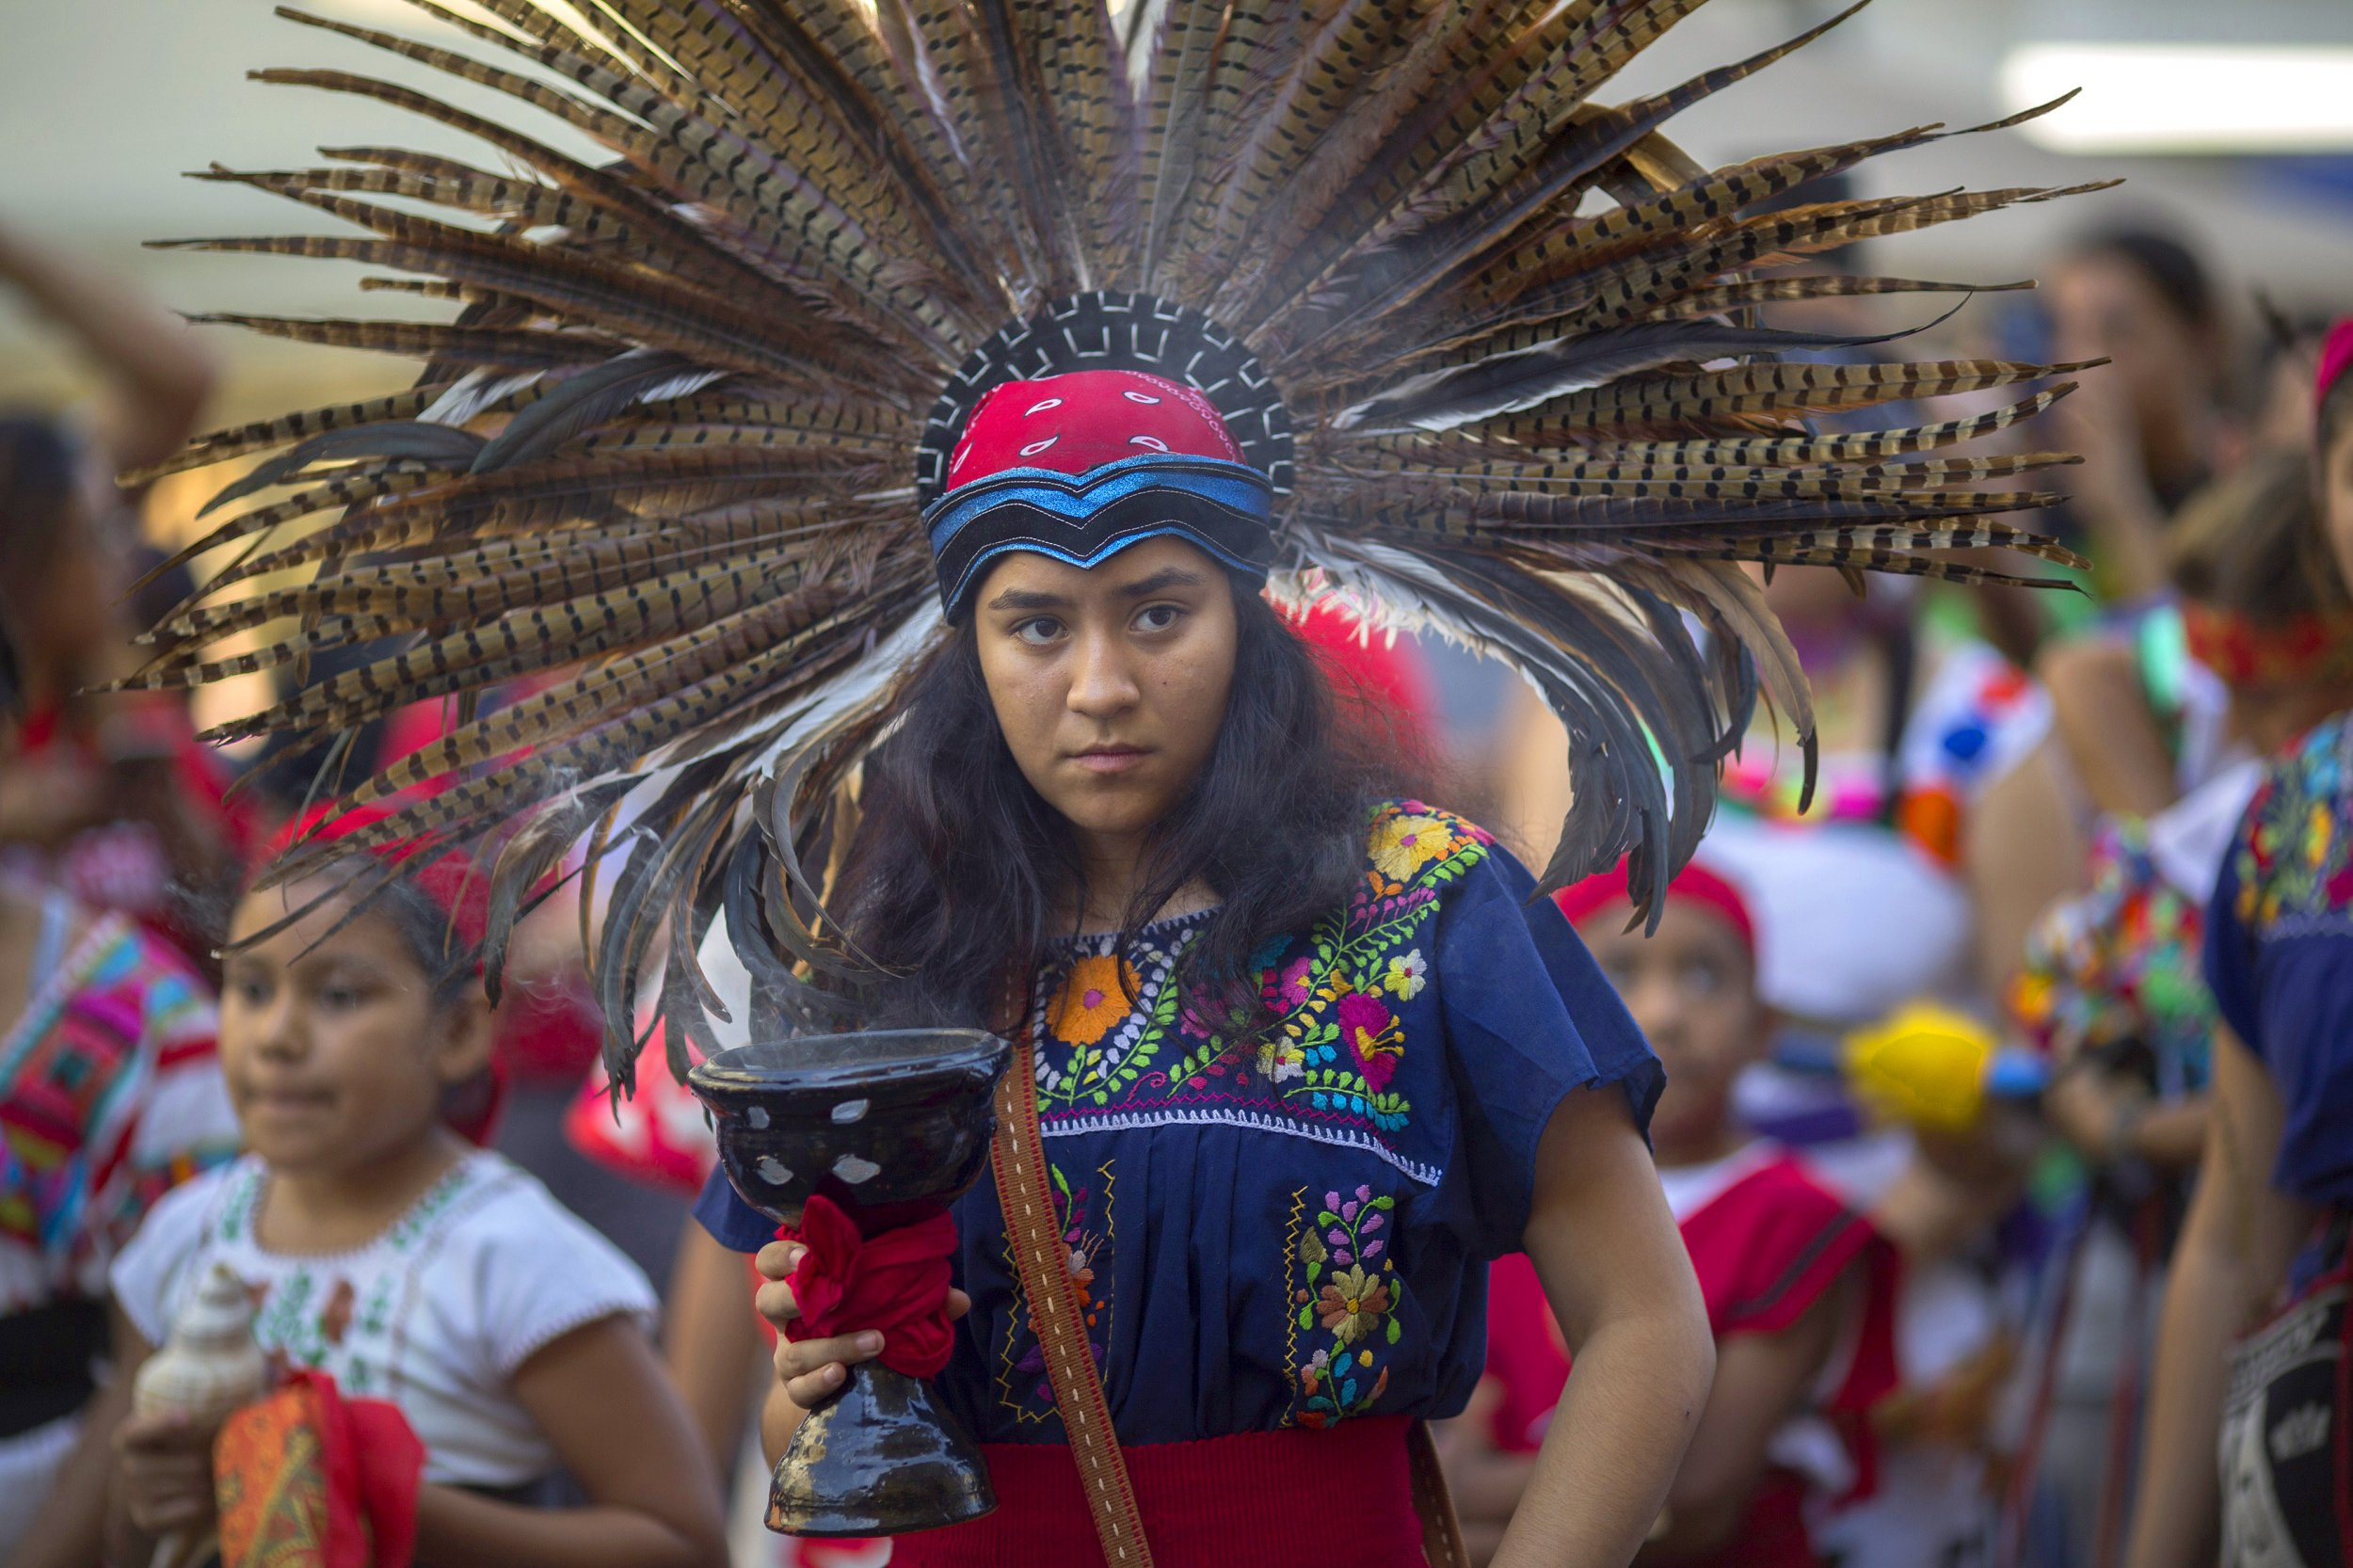 indigenous peoples american north native america columbus celebrating international california culture cities happy usa angeles los celebration holiday preparatory student